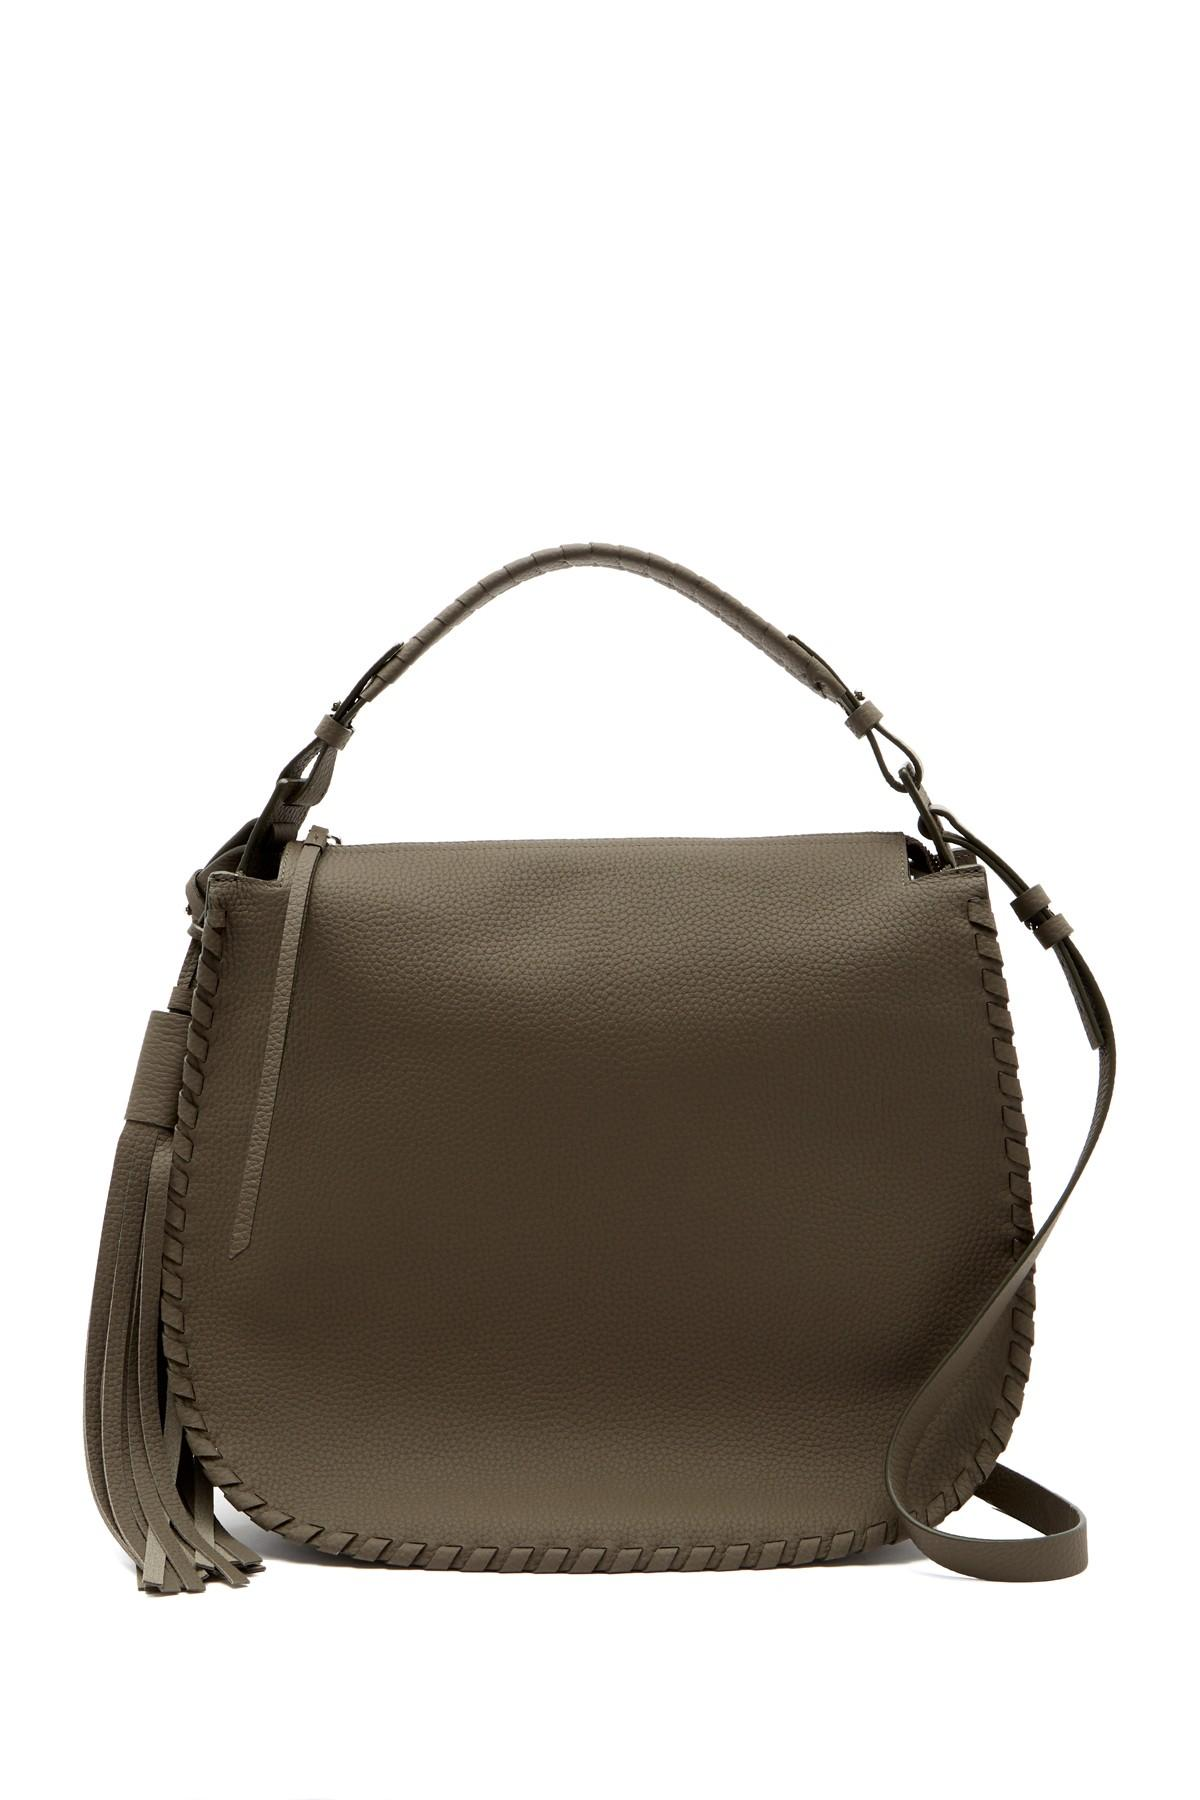 6d0c5ff0477 Lyst - AllSaints Mori Leather Hobo Bag in Gray - Save 67%